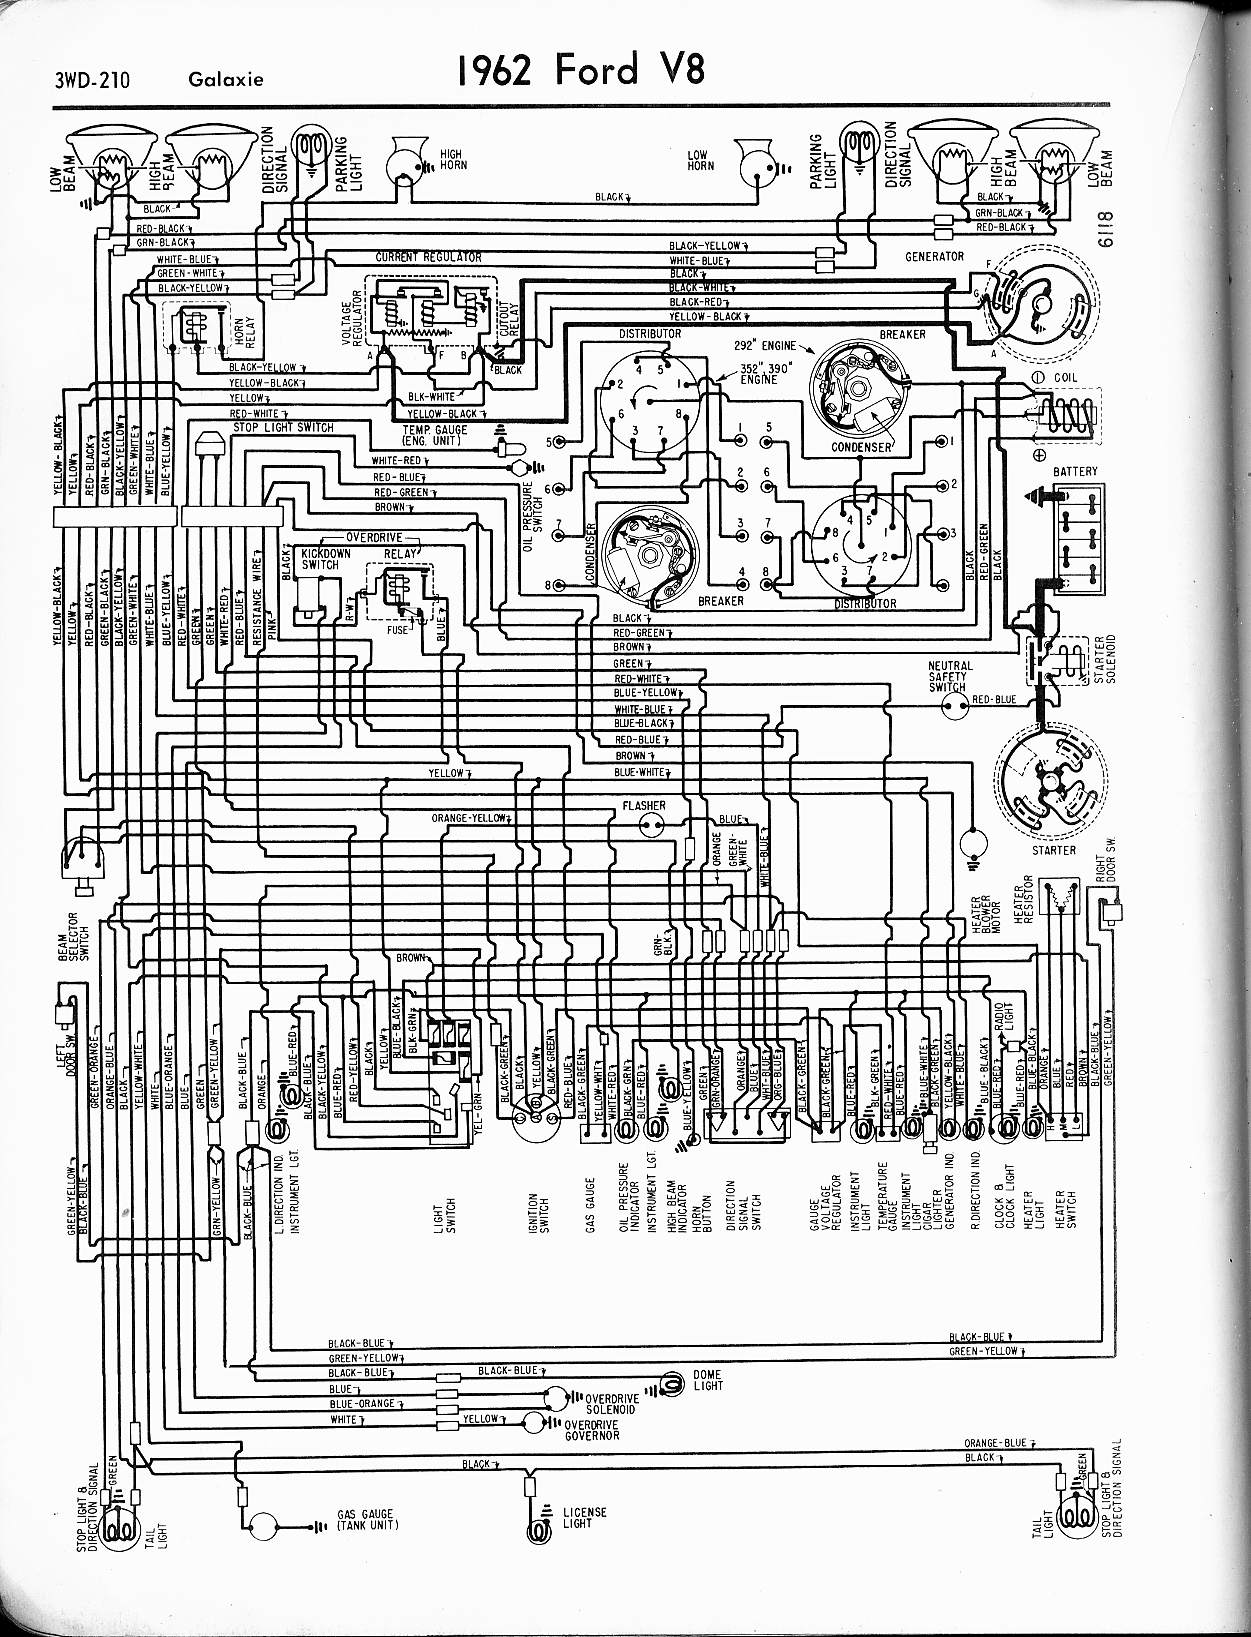 1965 Ford F100 Wiring Diagram Schematics Diagrams 1973 Flh Dash 1962 Fairlane Solenoid House Rh Maxturner Co Electrical